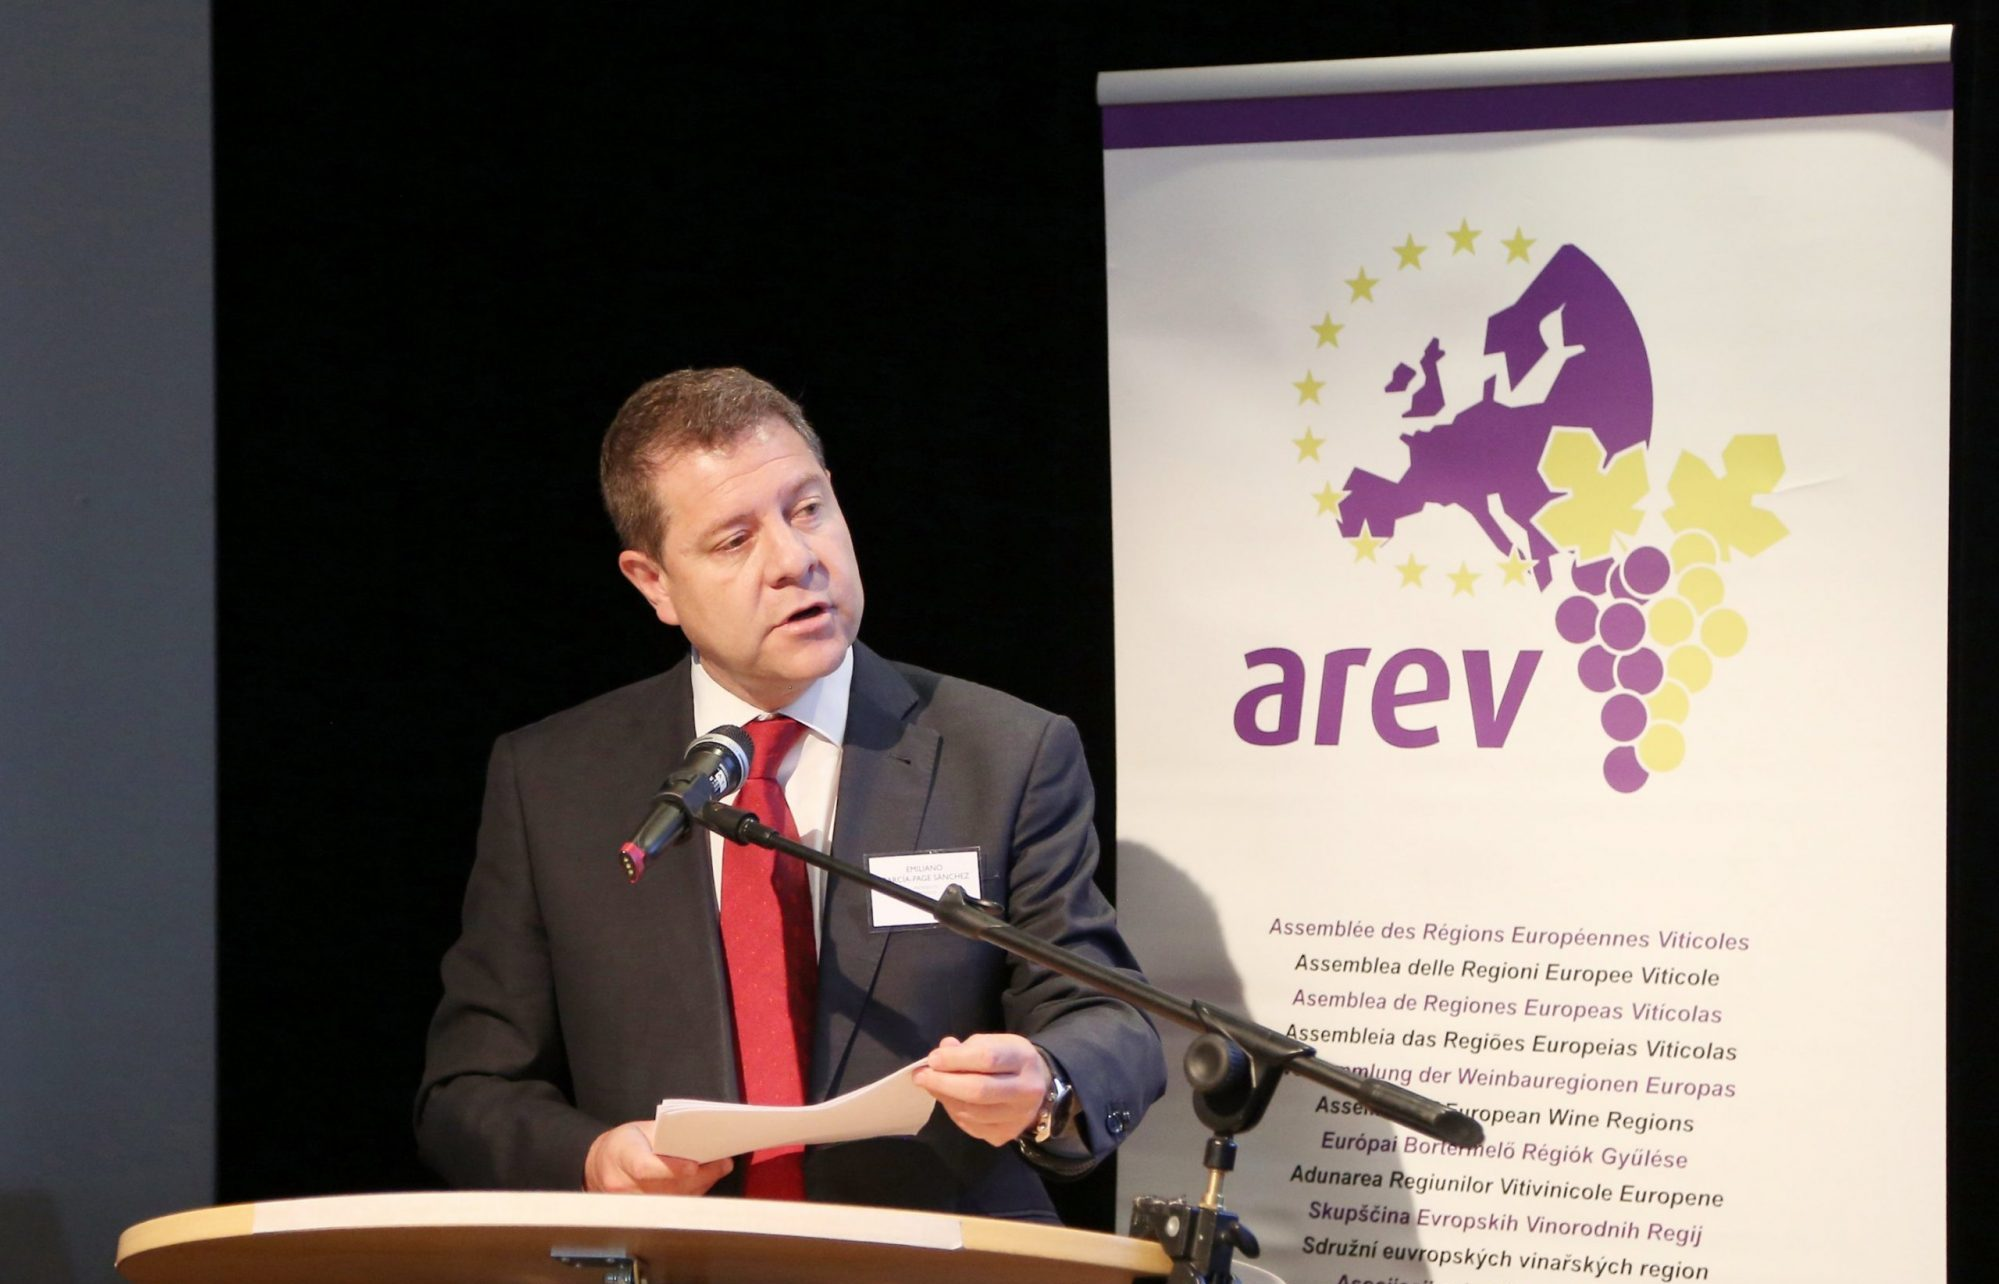 AREV asks the European Commission for an extraordinary budget for the urgent revival of the wine market by Covid-19